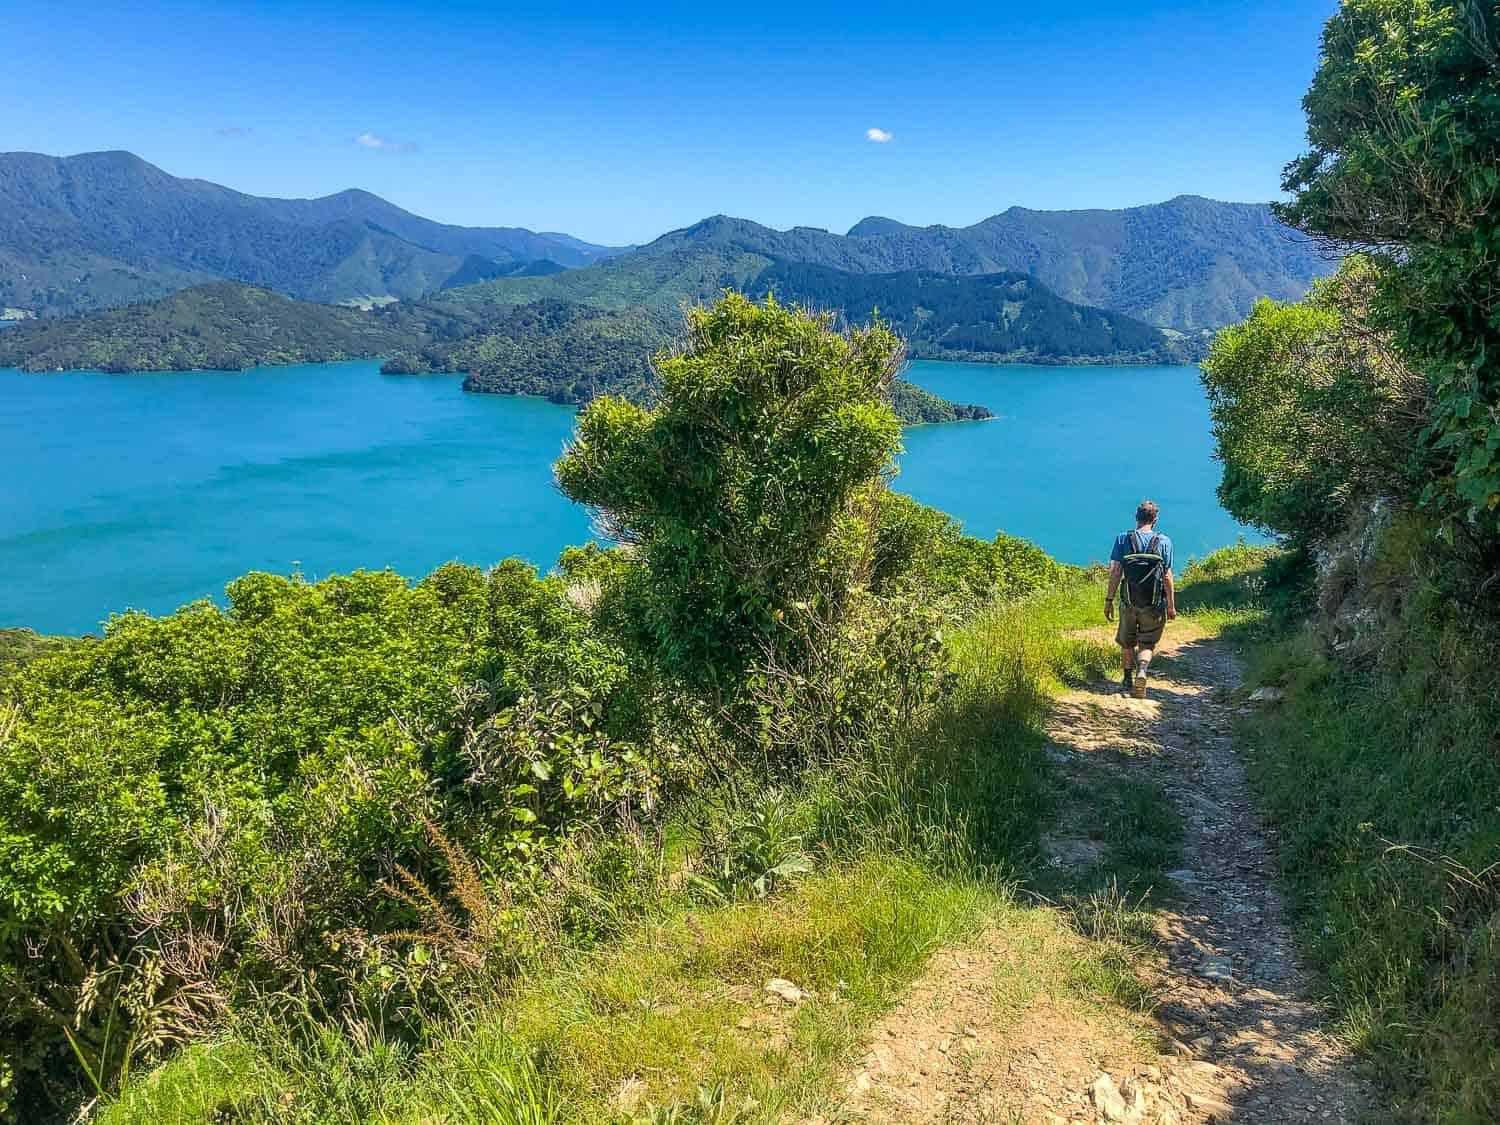 Walking the Queen Charlotte Track in the Marlborough Sounds, New Zealand